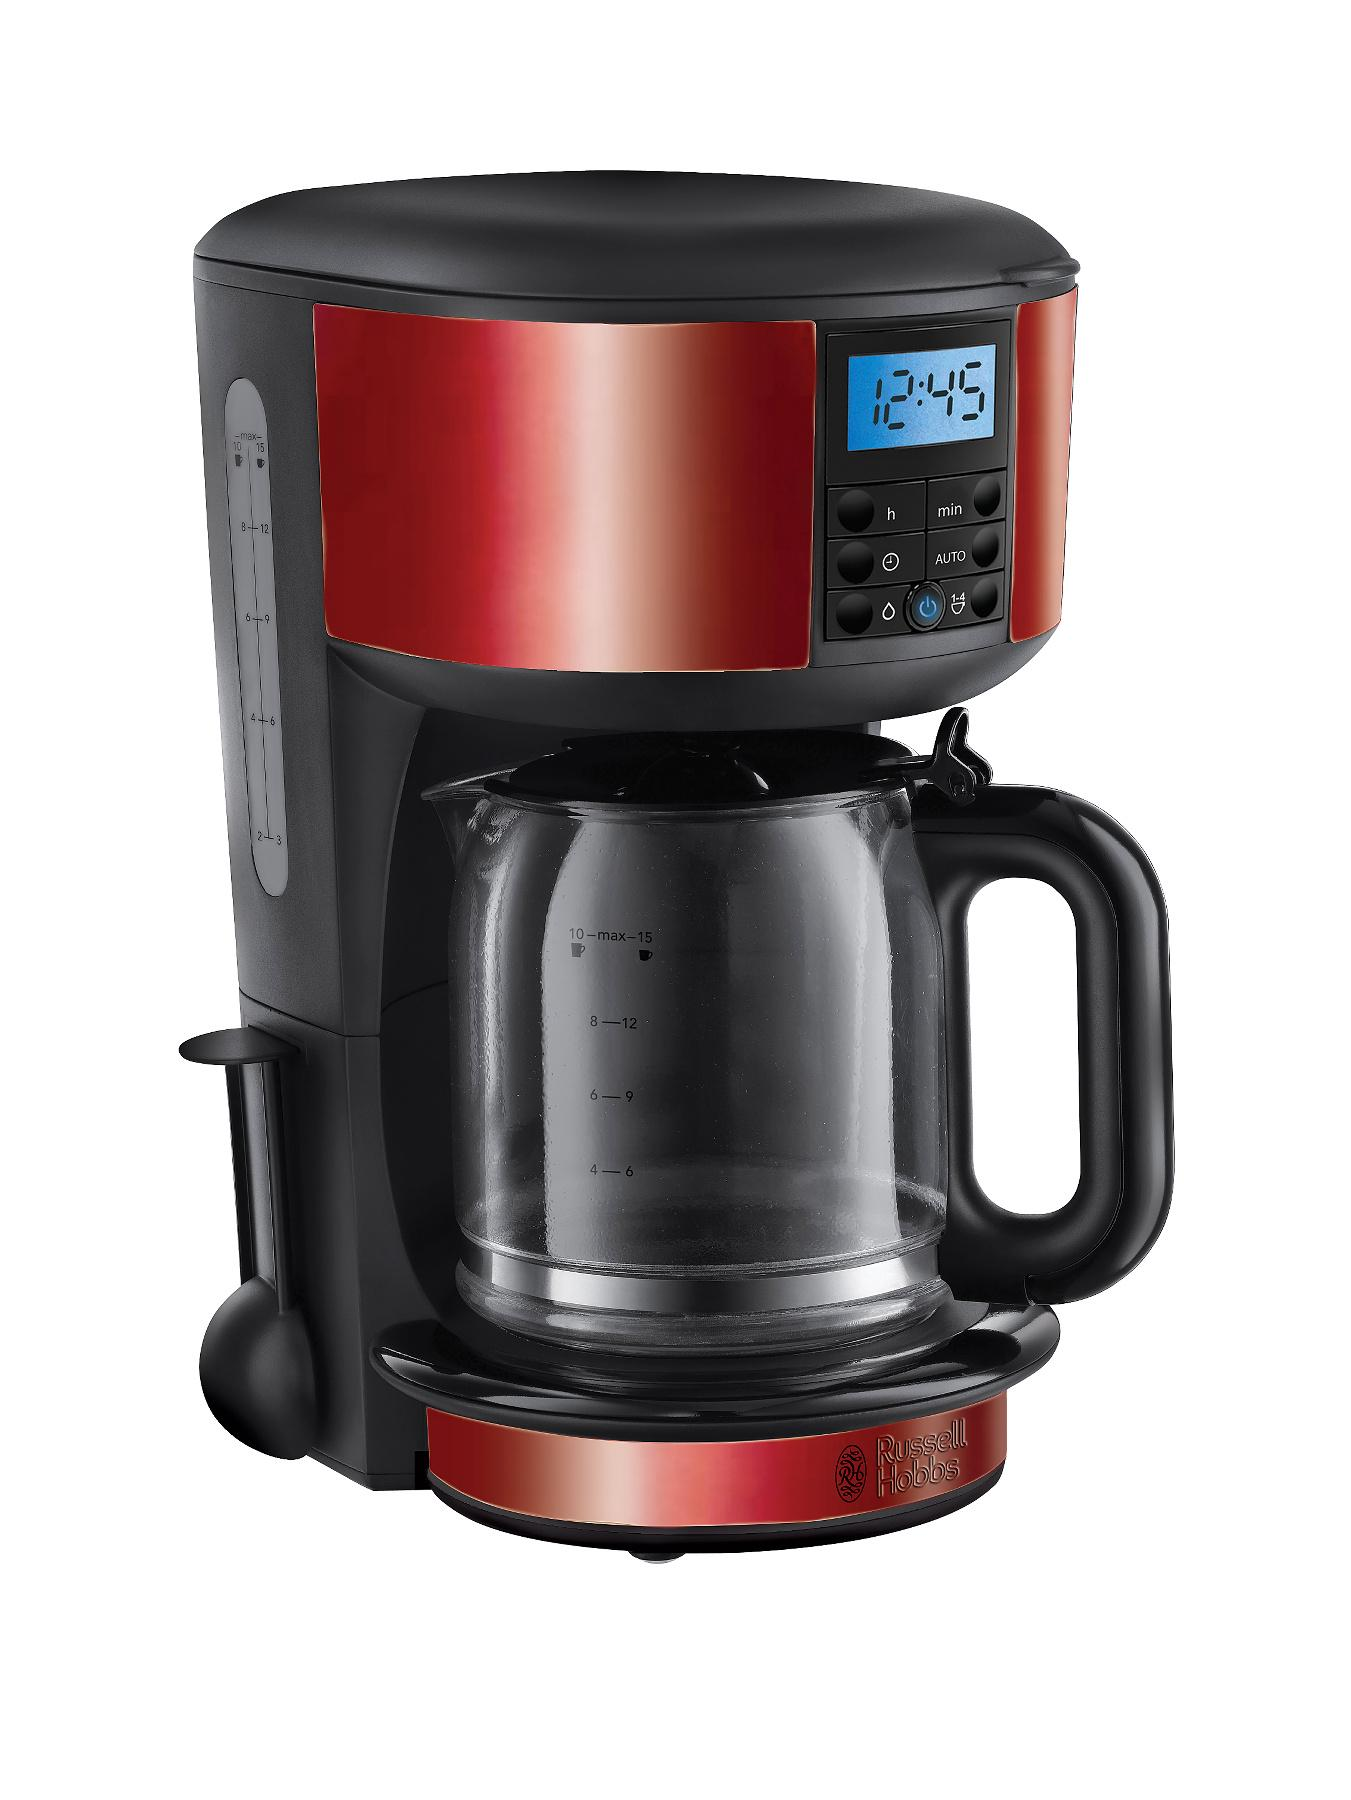 Russell Hobbs Coffee Maker Red : Russell Hobbs 20682 Legacy Coffee Maker - Red littlewoods.com